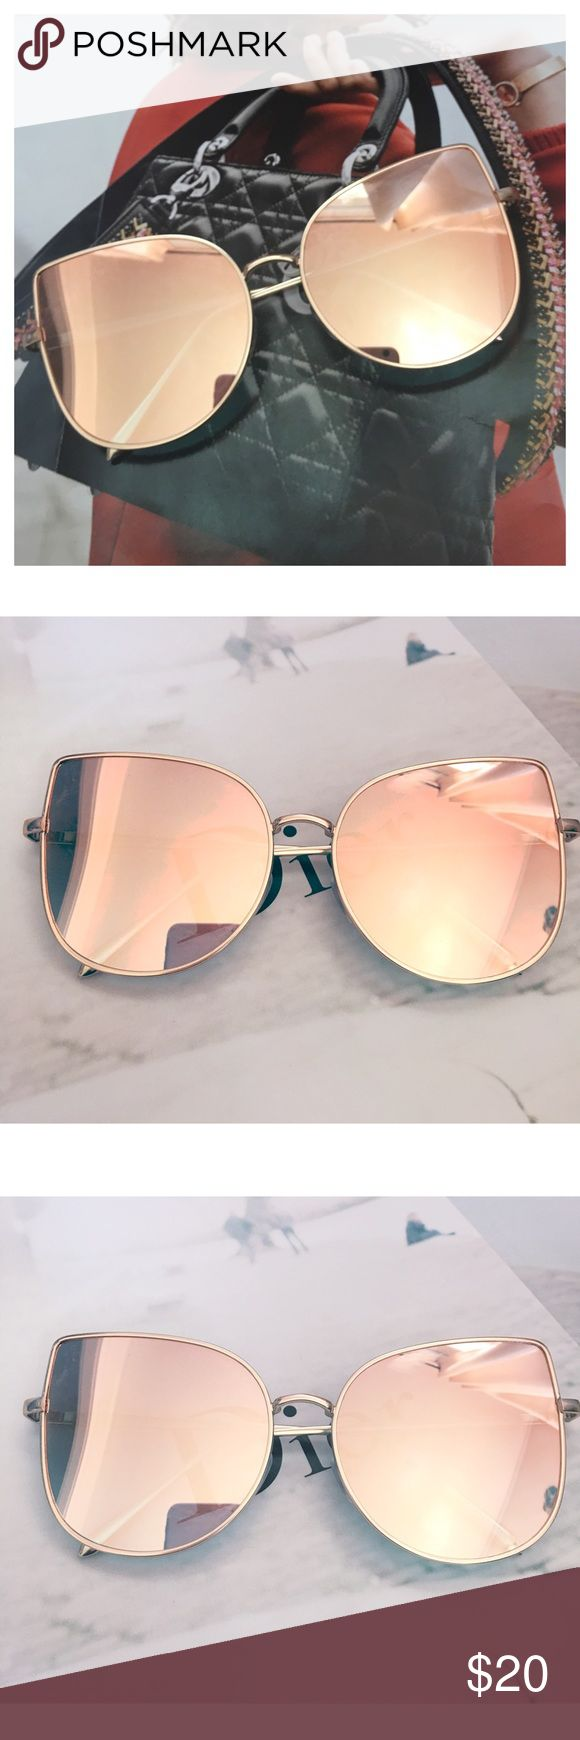 Rose Gold Mirrored Sunglasses, Cat Eye Sunglasses Restocked! Cat Eye Aviator Sunglasses. This listing is for a pair of Cat Eye aviator sunshades. Rose Gold Mirrored Sunglasses. Retro. Sunglasses. Wire sunglasses. Trending sunglasses. UV protection. Top quality! Brand new! Bundle and save! Accessories Glasses